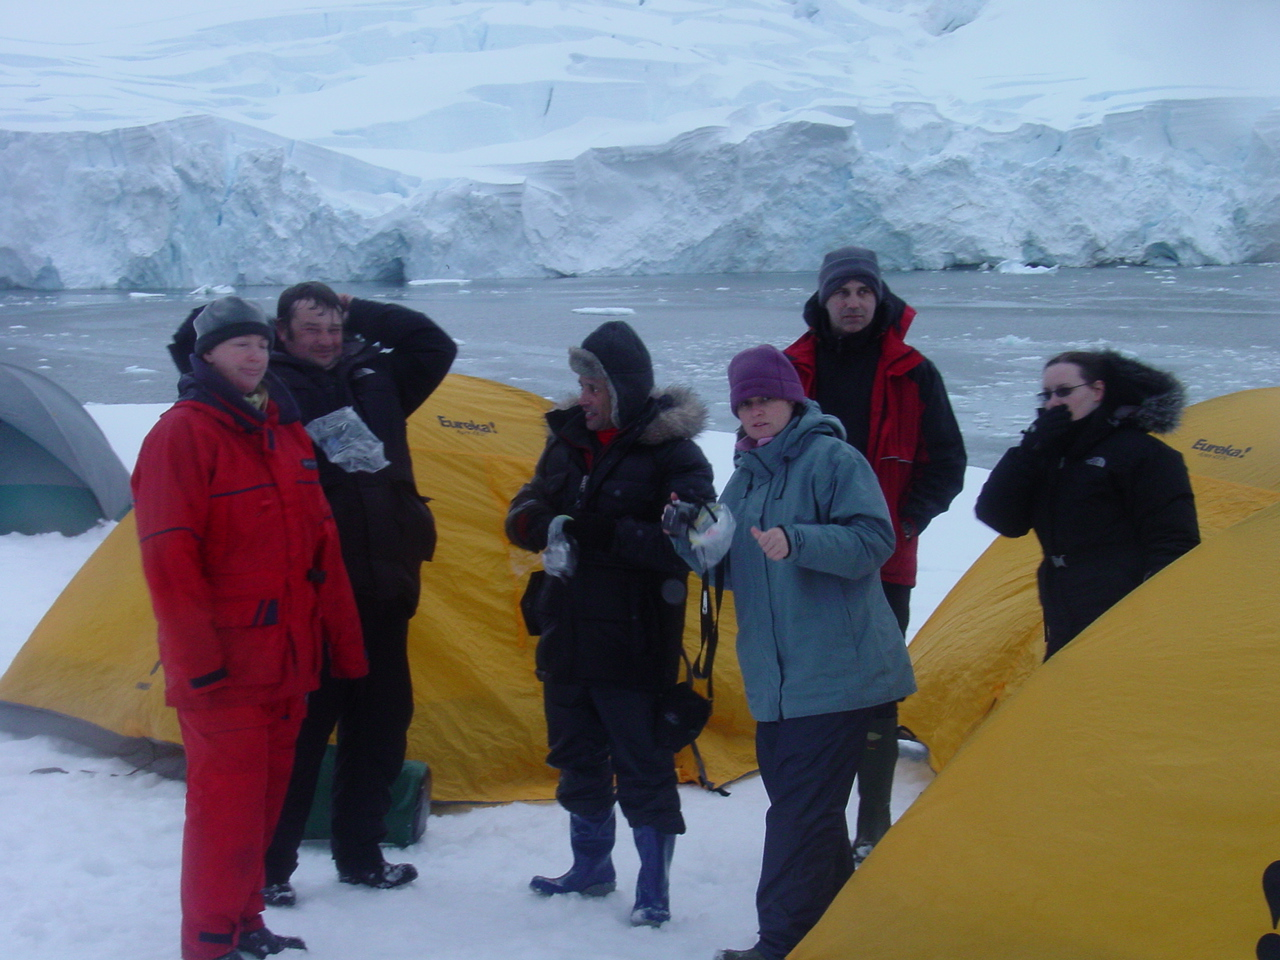 Perhaps you want to camp on the ice in Antarctica like we did? That could fund life-saving cancer research!